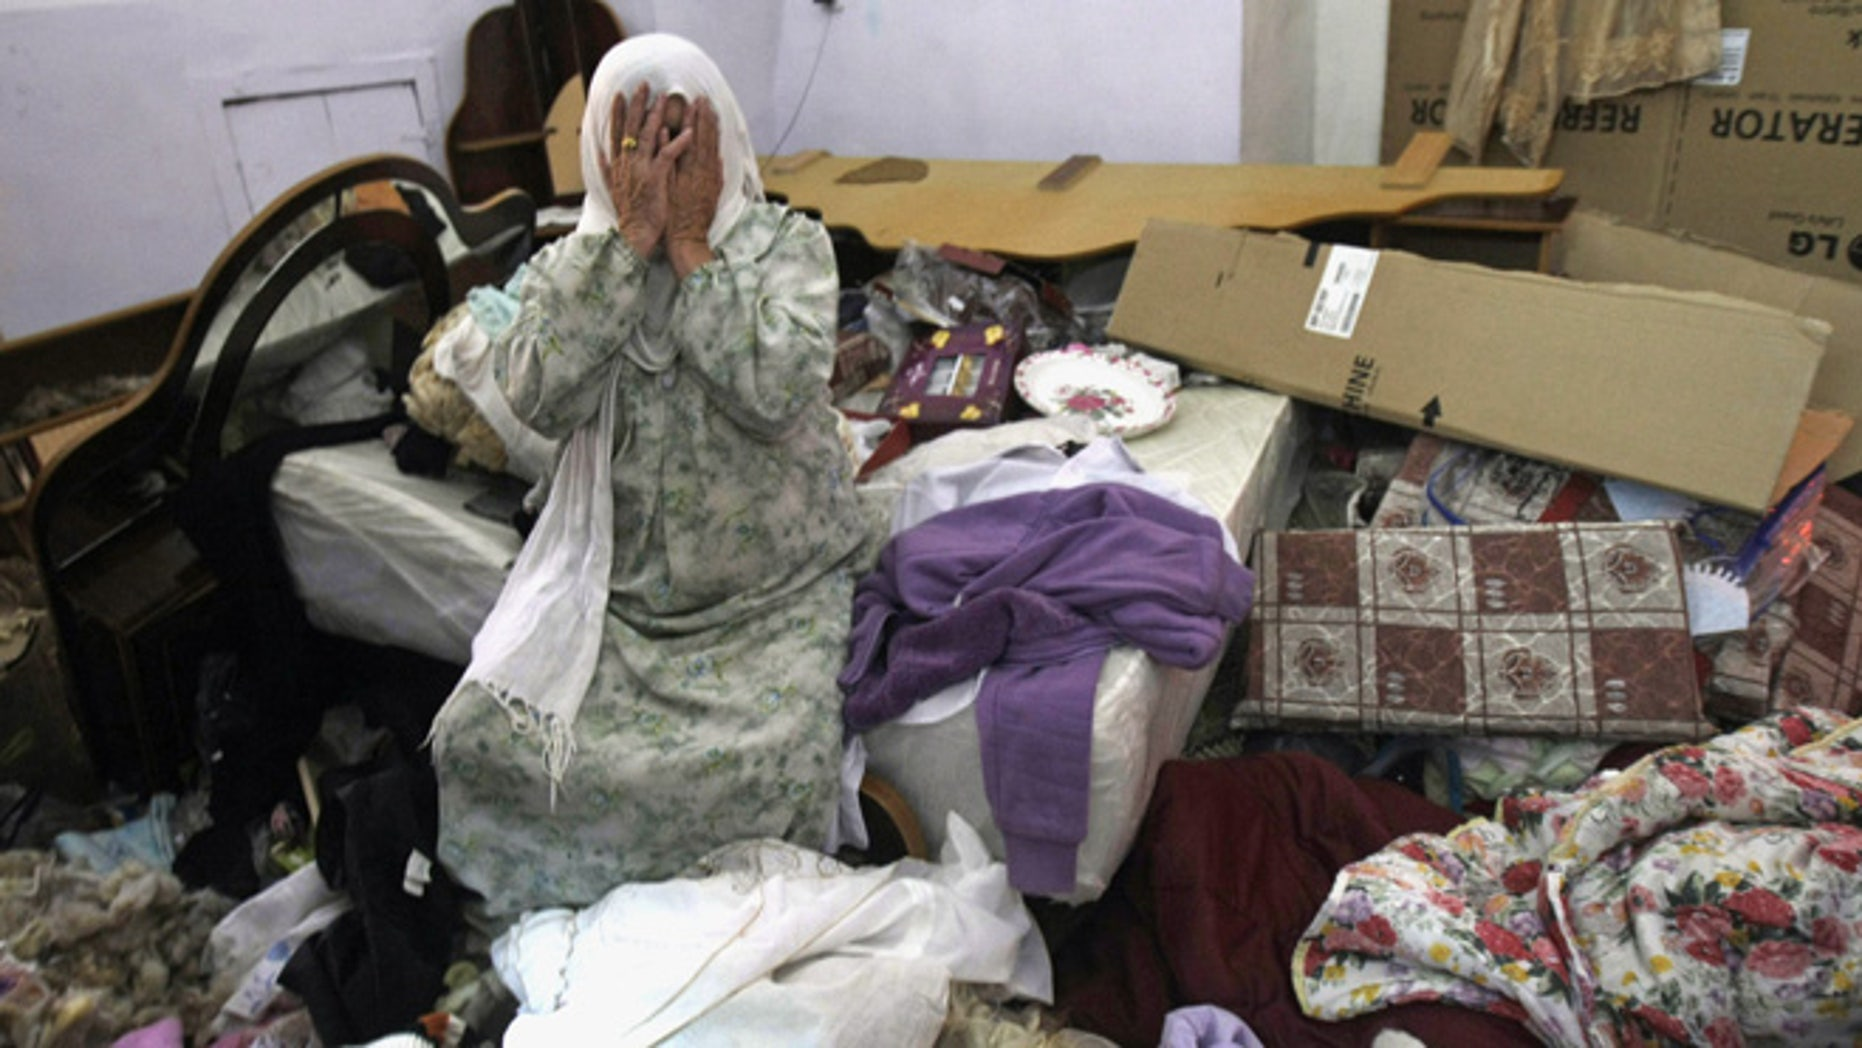 June 22, 2014: A Palestinian woman cries in her home after a raid by Israeli troops as the army continues feverish searches for three missing Israeli teens, in Salim village near the West Bank city of Nablus. (AP)